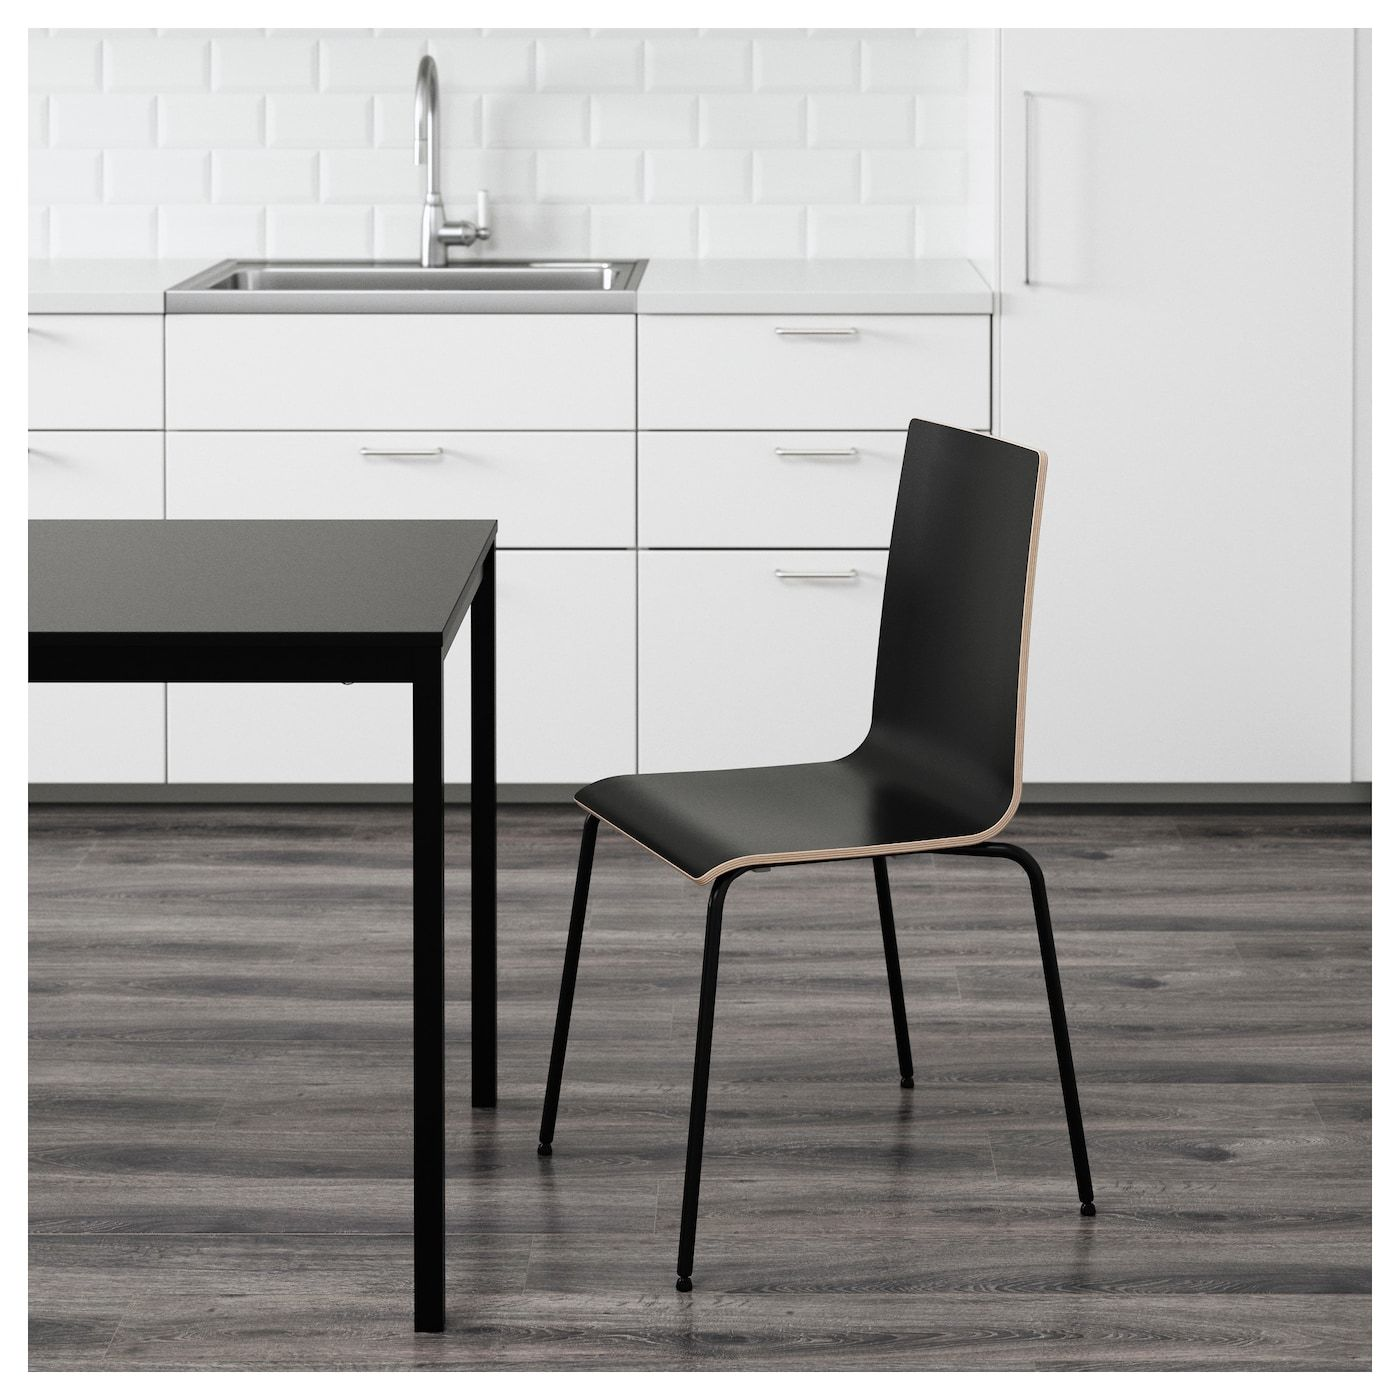 Chaise Martin Ikea Martin Chair Black Black In 2019 House Inspiration Ikea